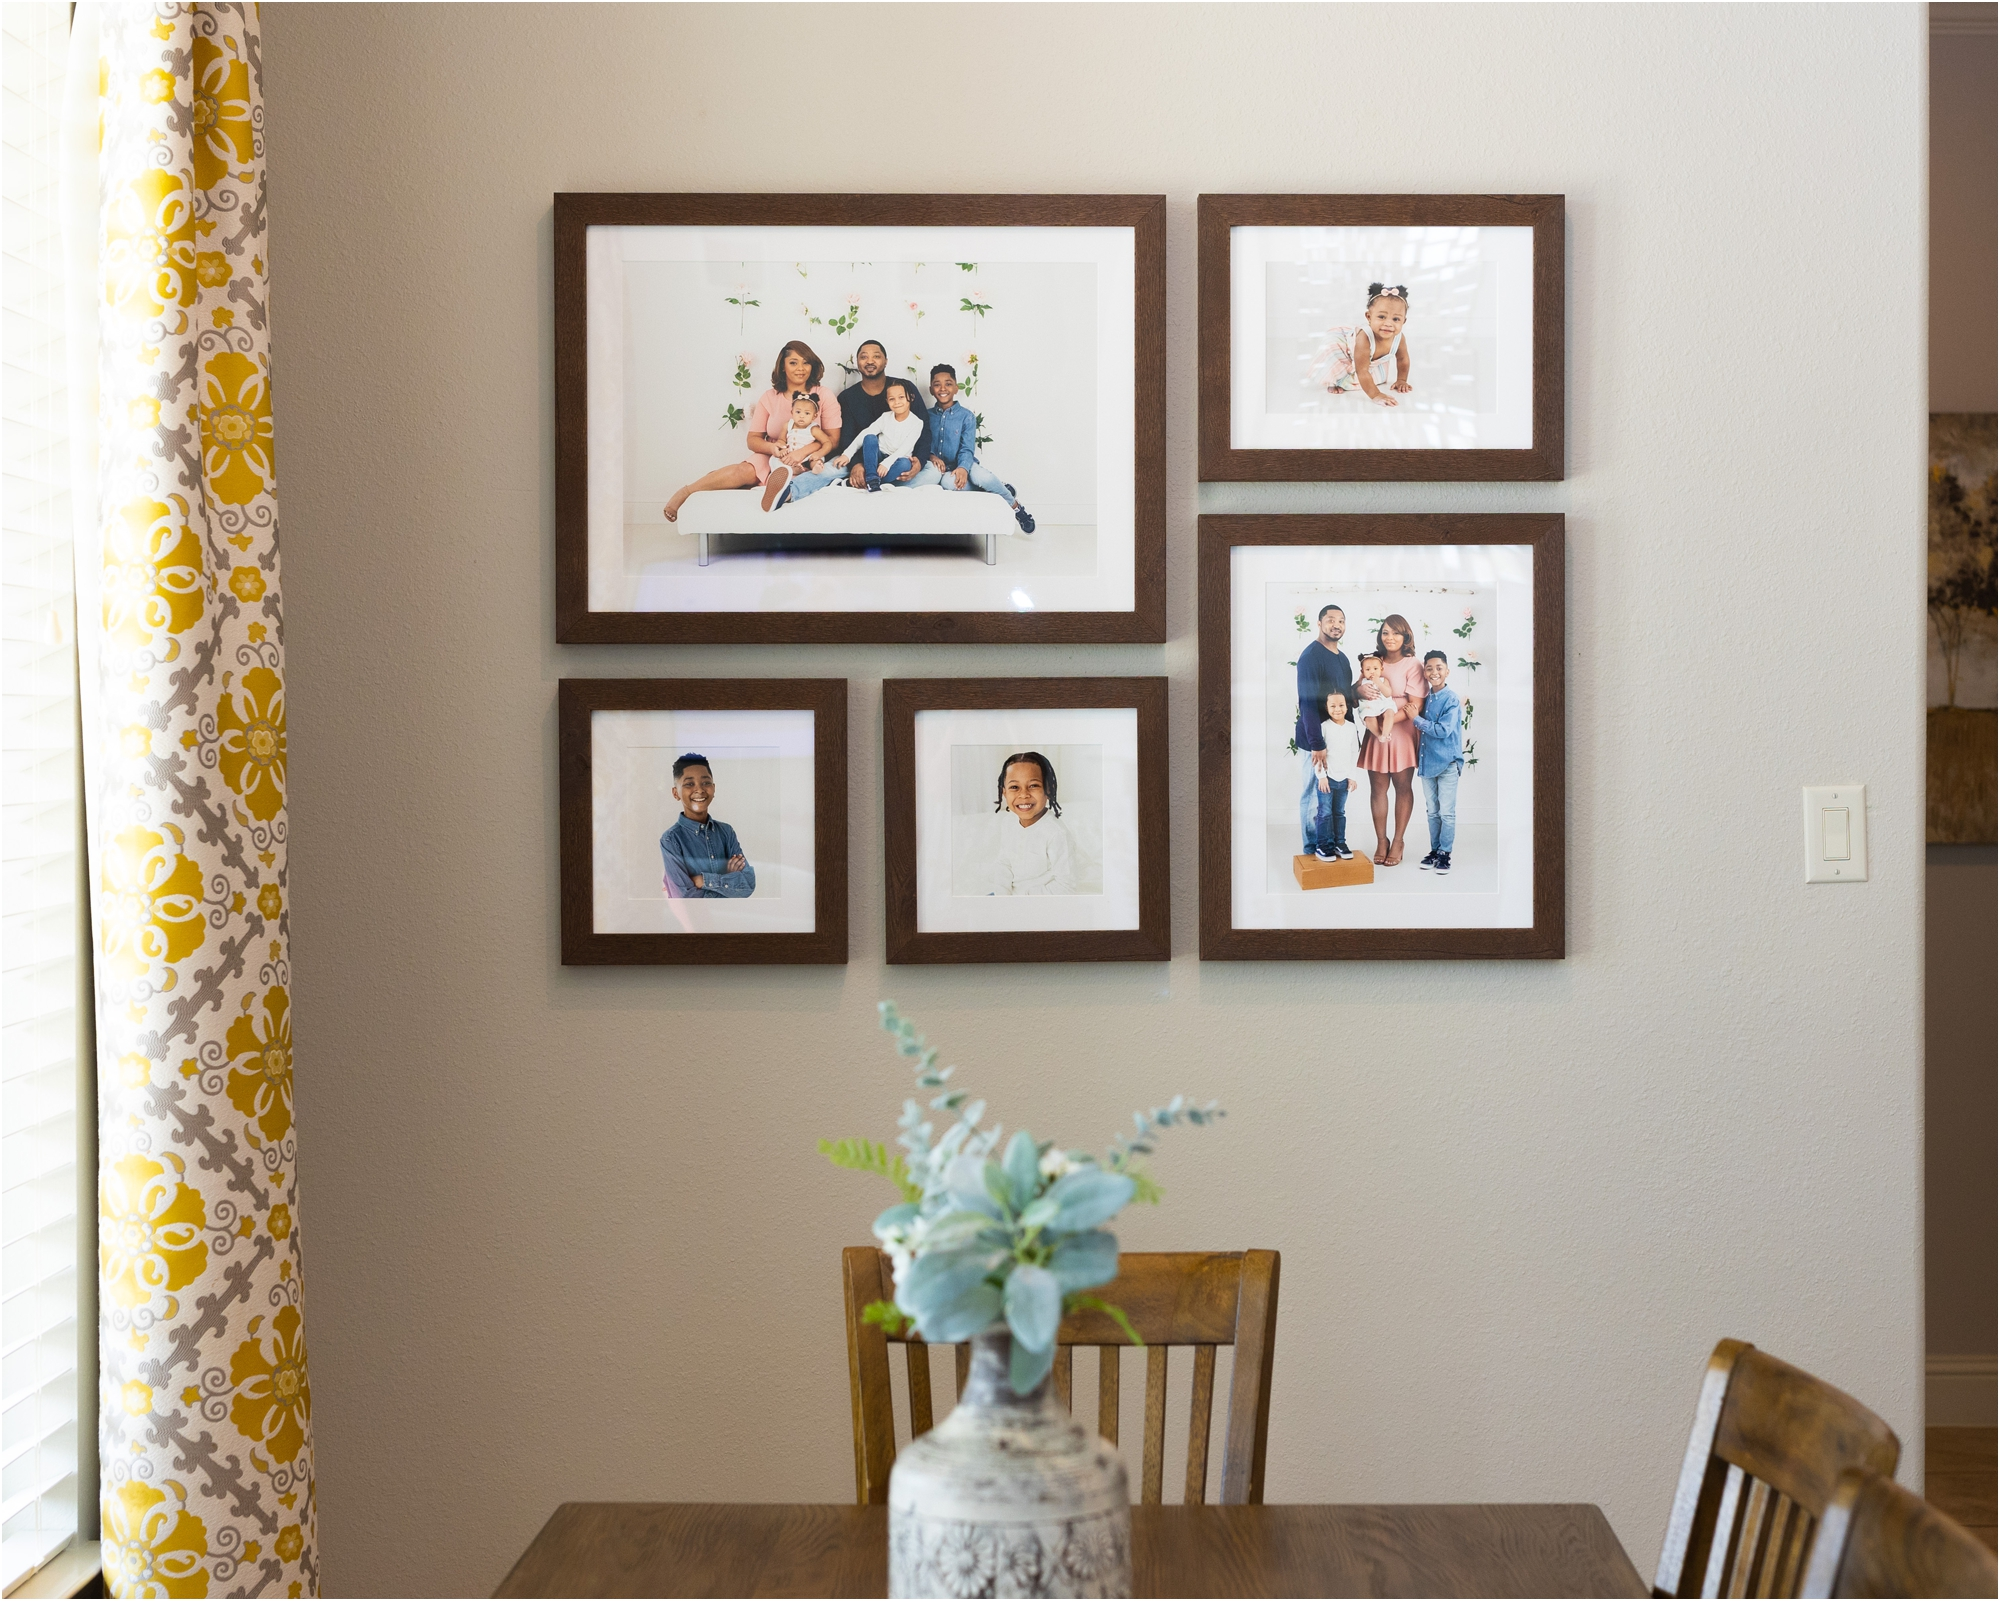 Custom designed gallery wall design by Houston family photographer, Kelly of Lifetime of Clicks Photography.